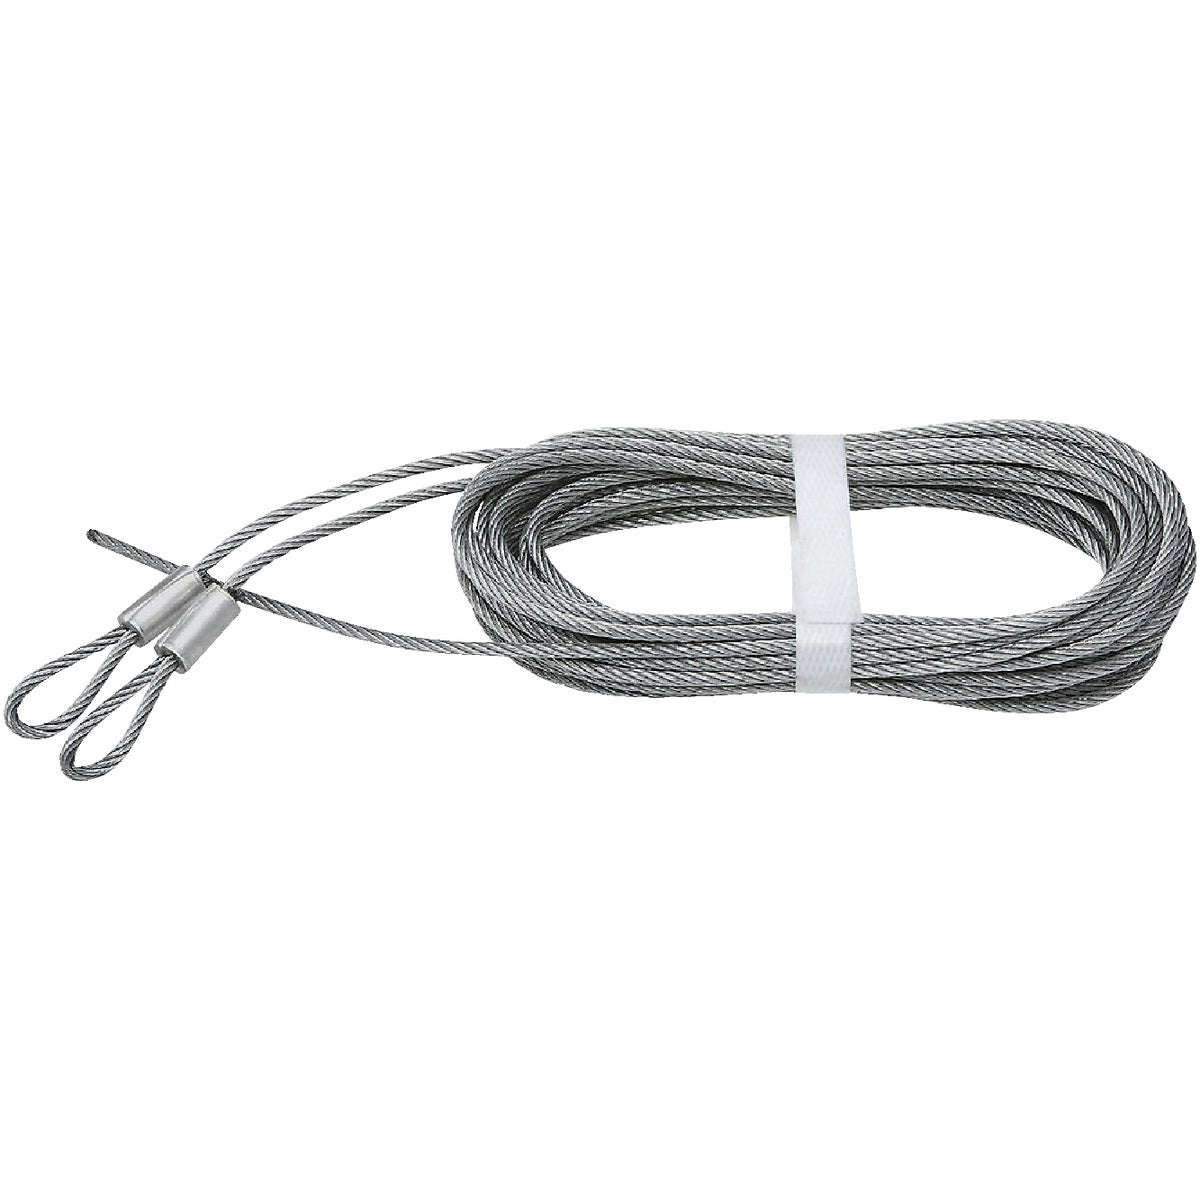 National Mfg. 12' EXTENSION CABLE N280313